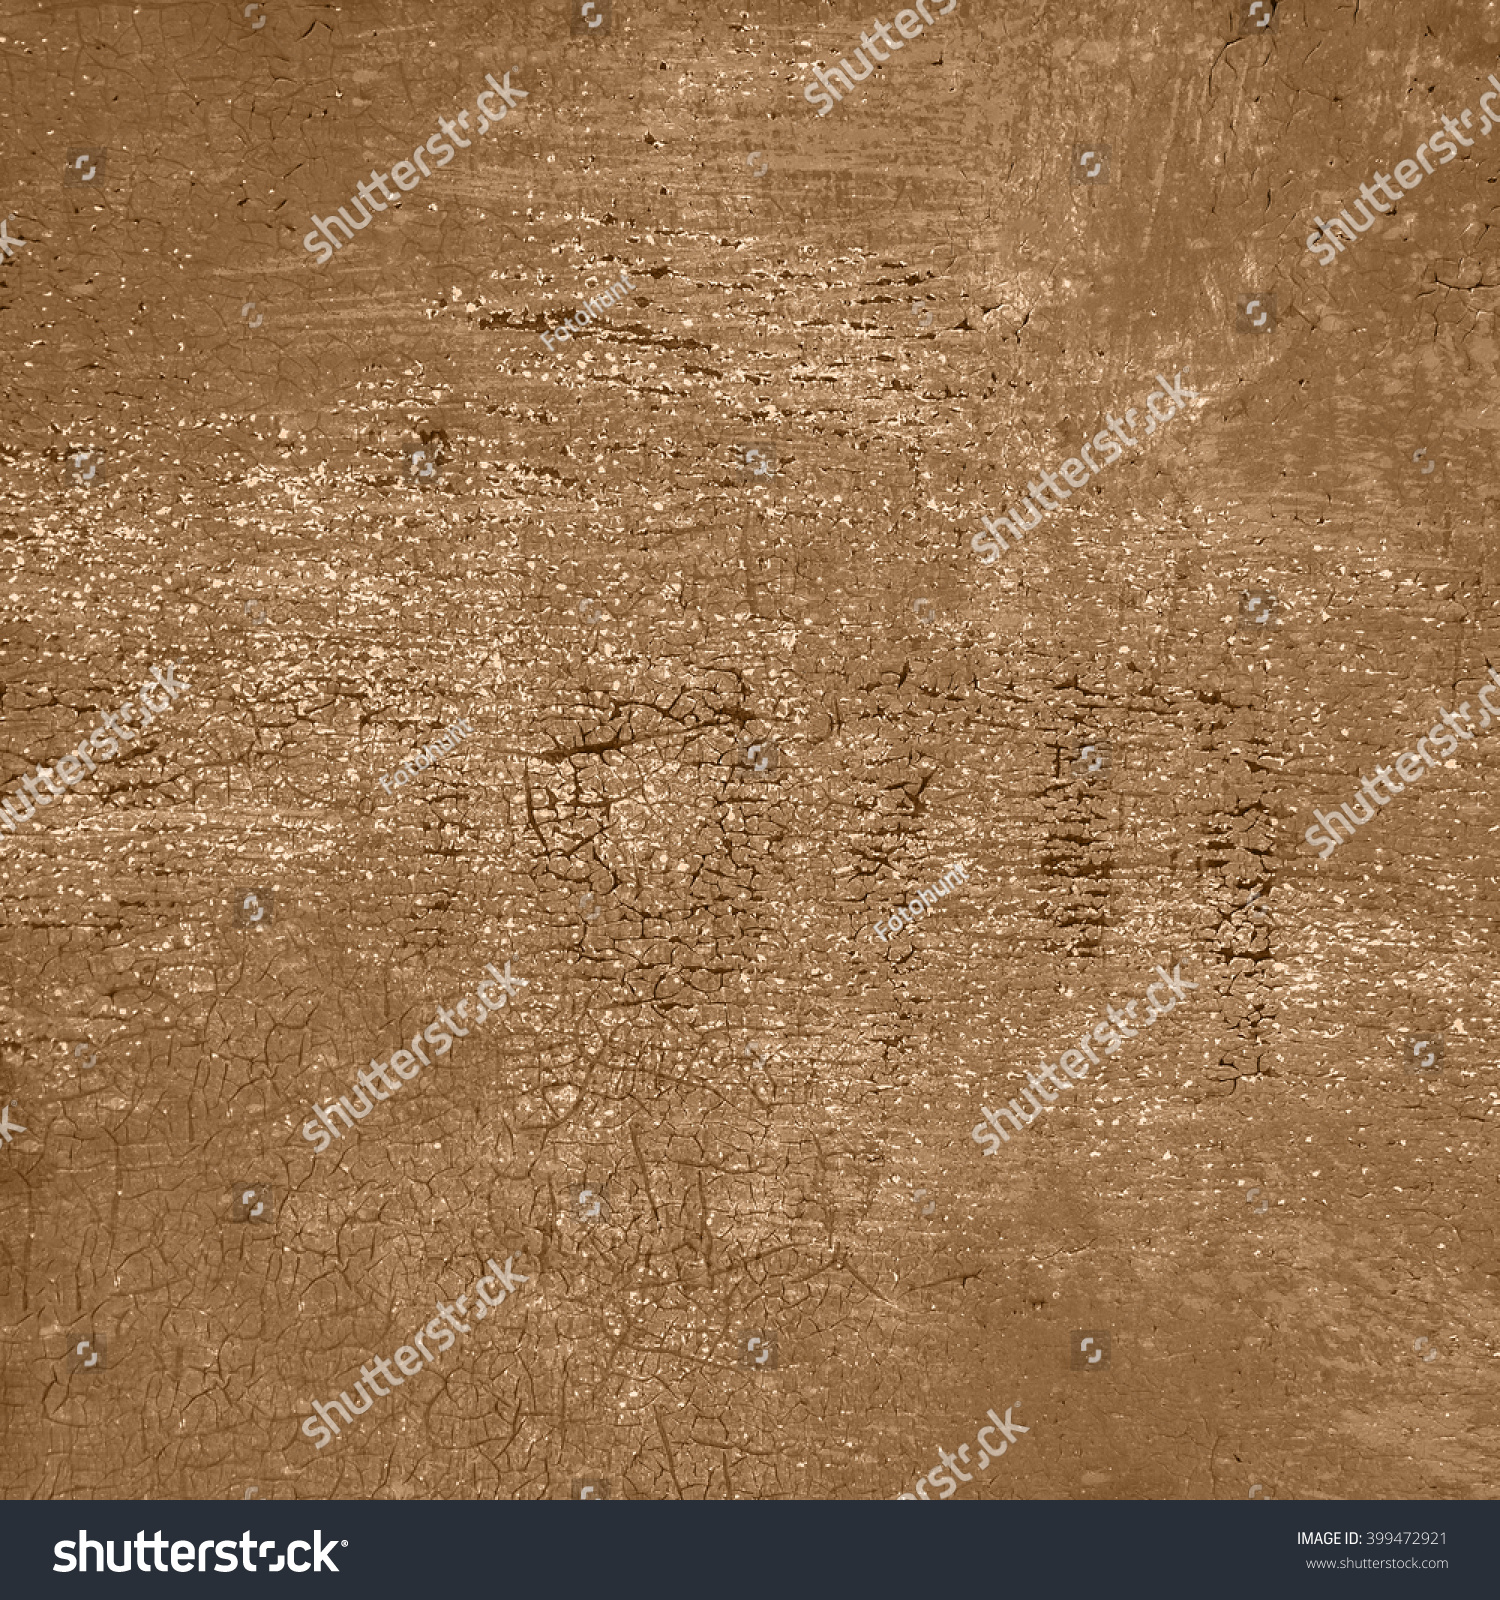 Brown Textured Concrete : Abstract brown background texture concrete wall stock